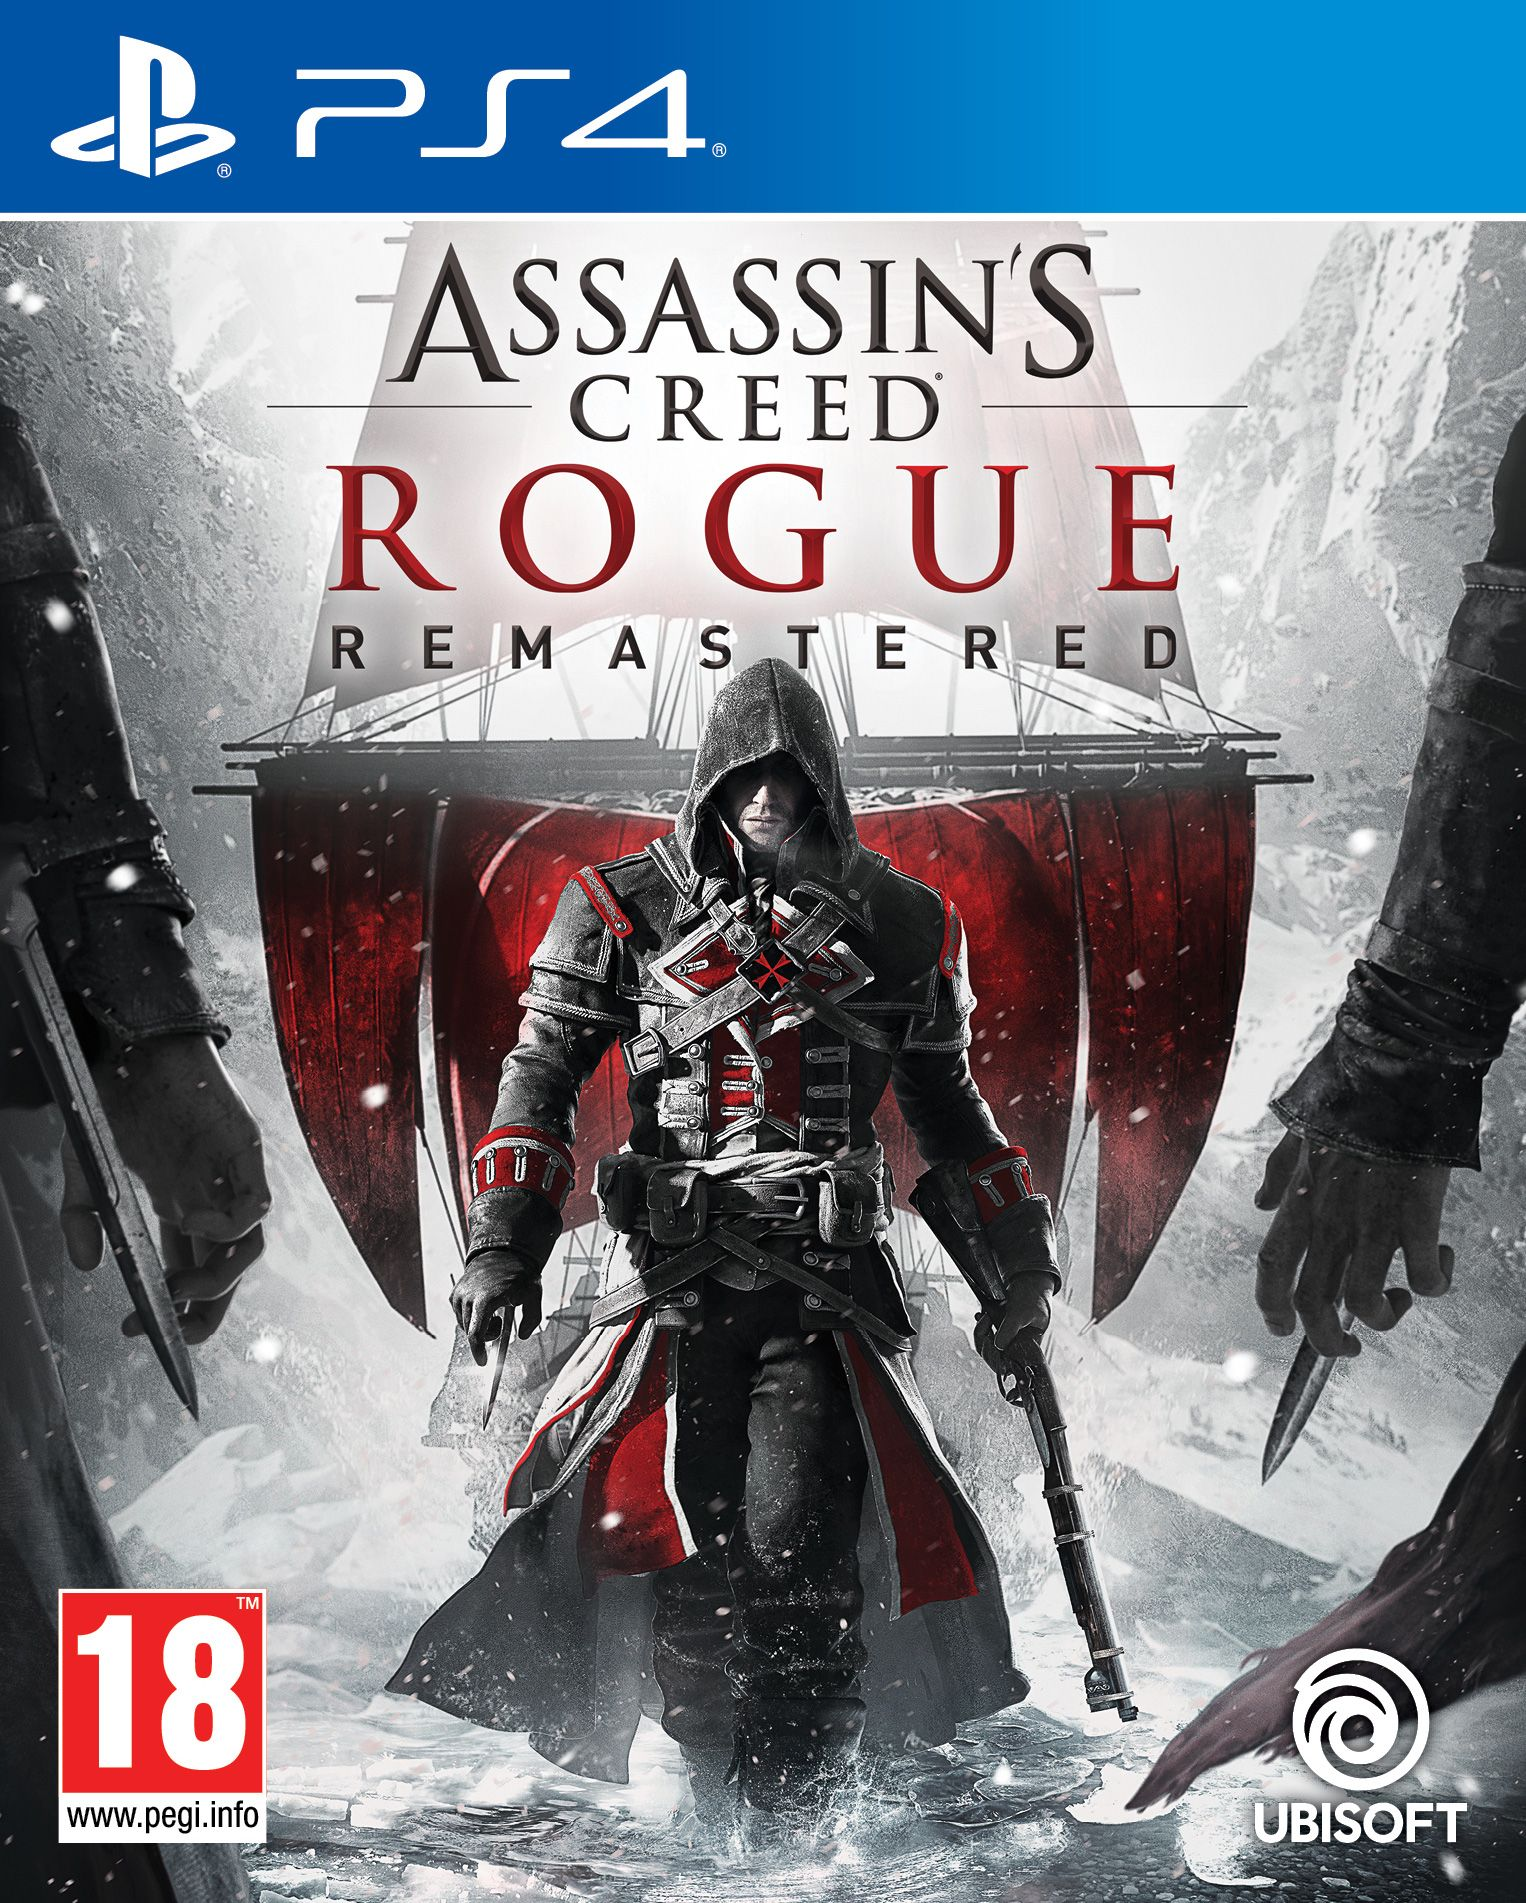 Assassin's Creed Rogue Remastered (PS4) - 1